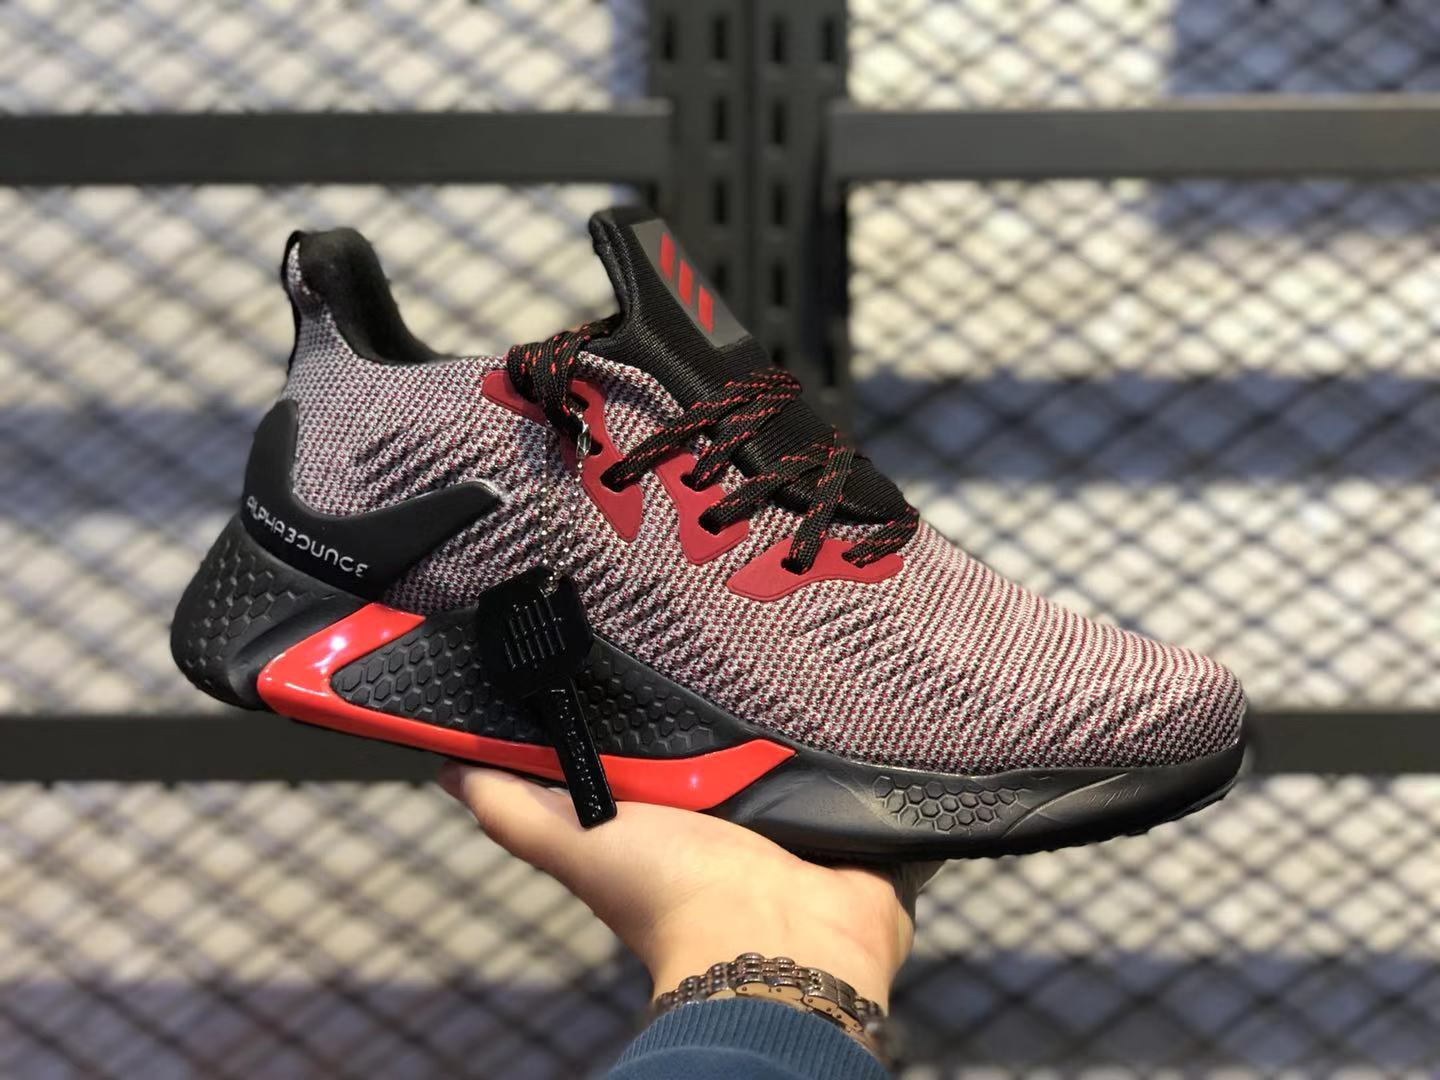 Adidas AlphaBounce Beyond Core Black/Red-Orange Athletic Sneakers Online Buy